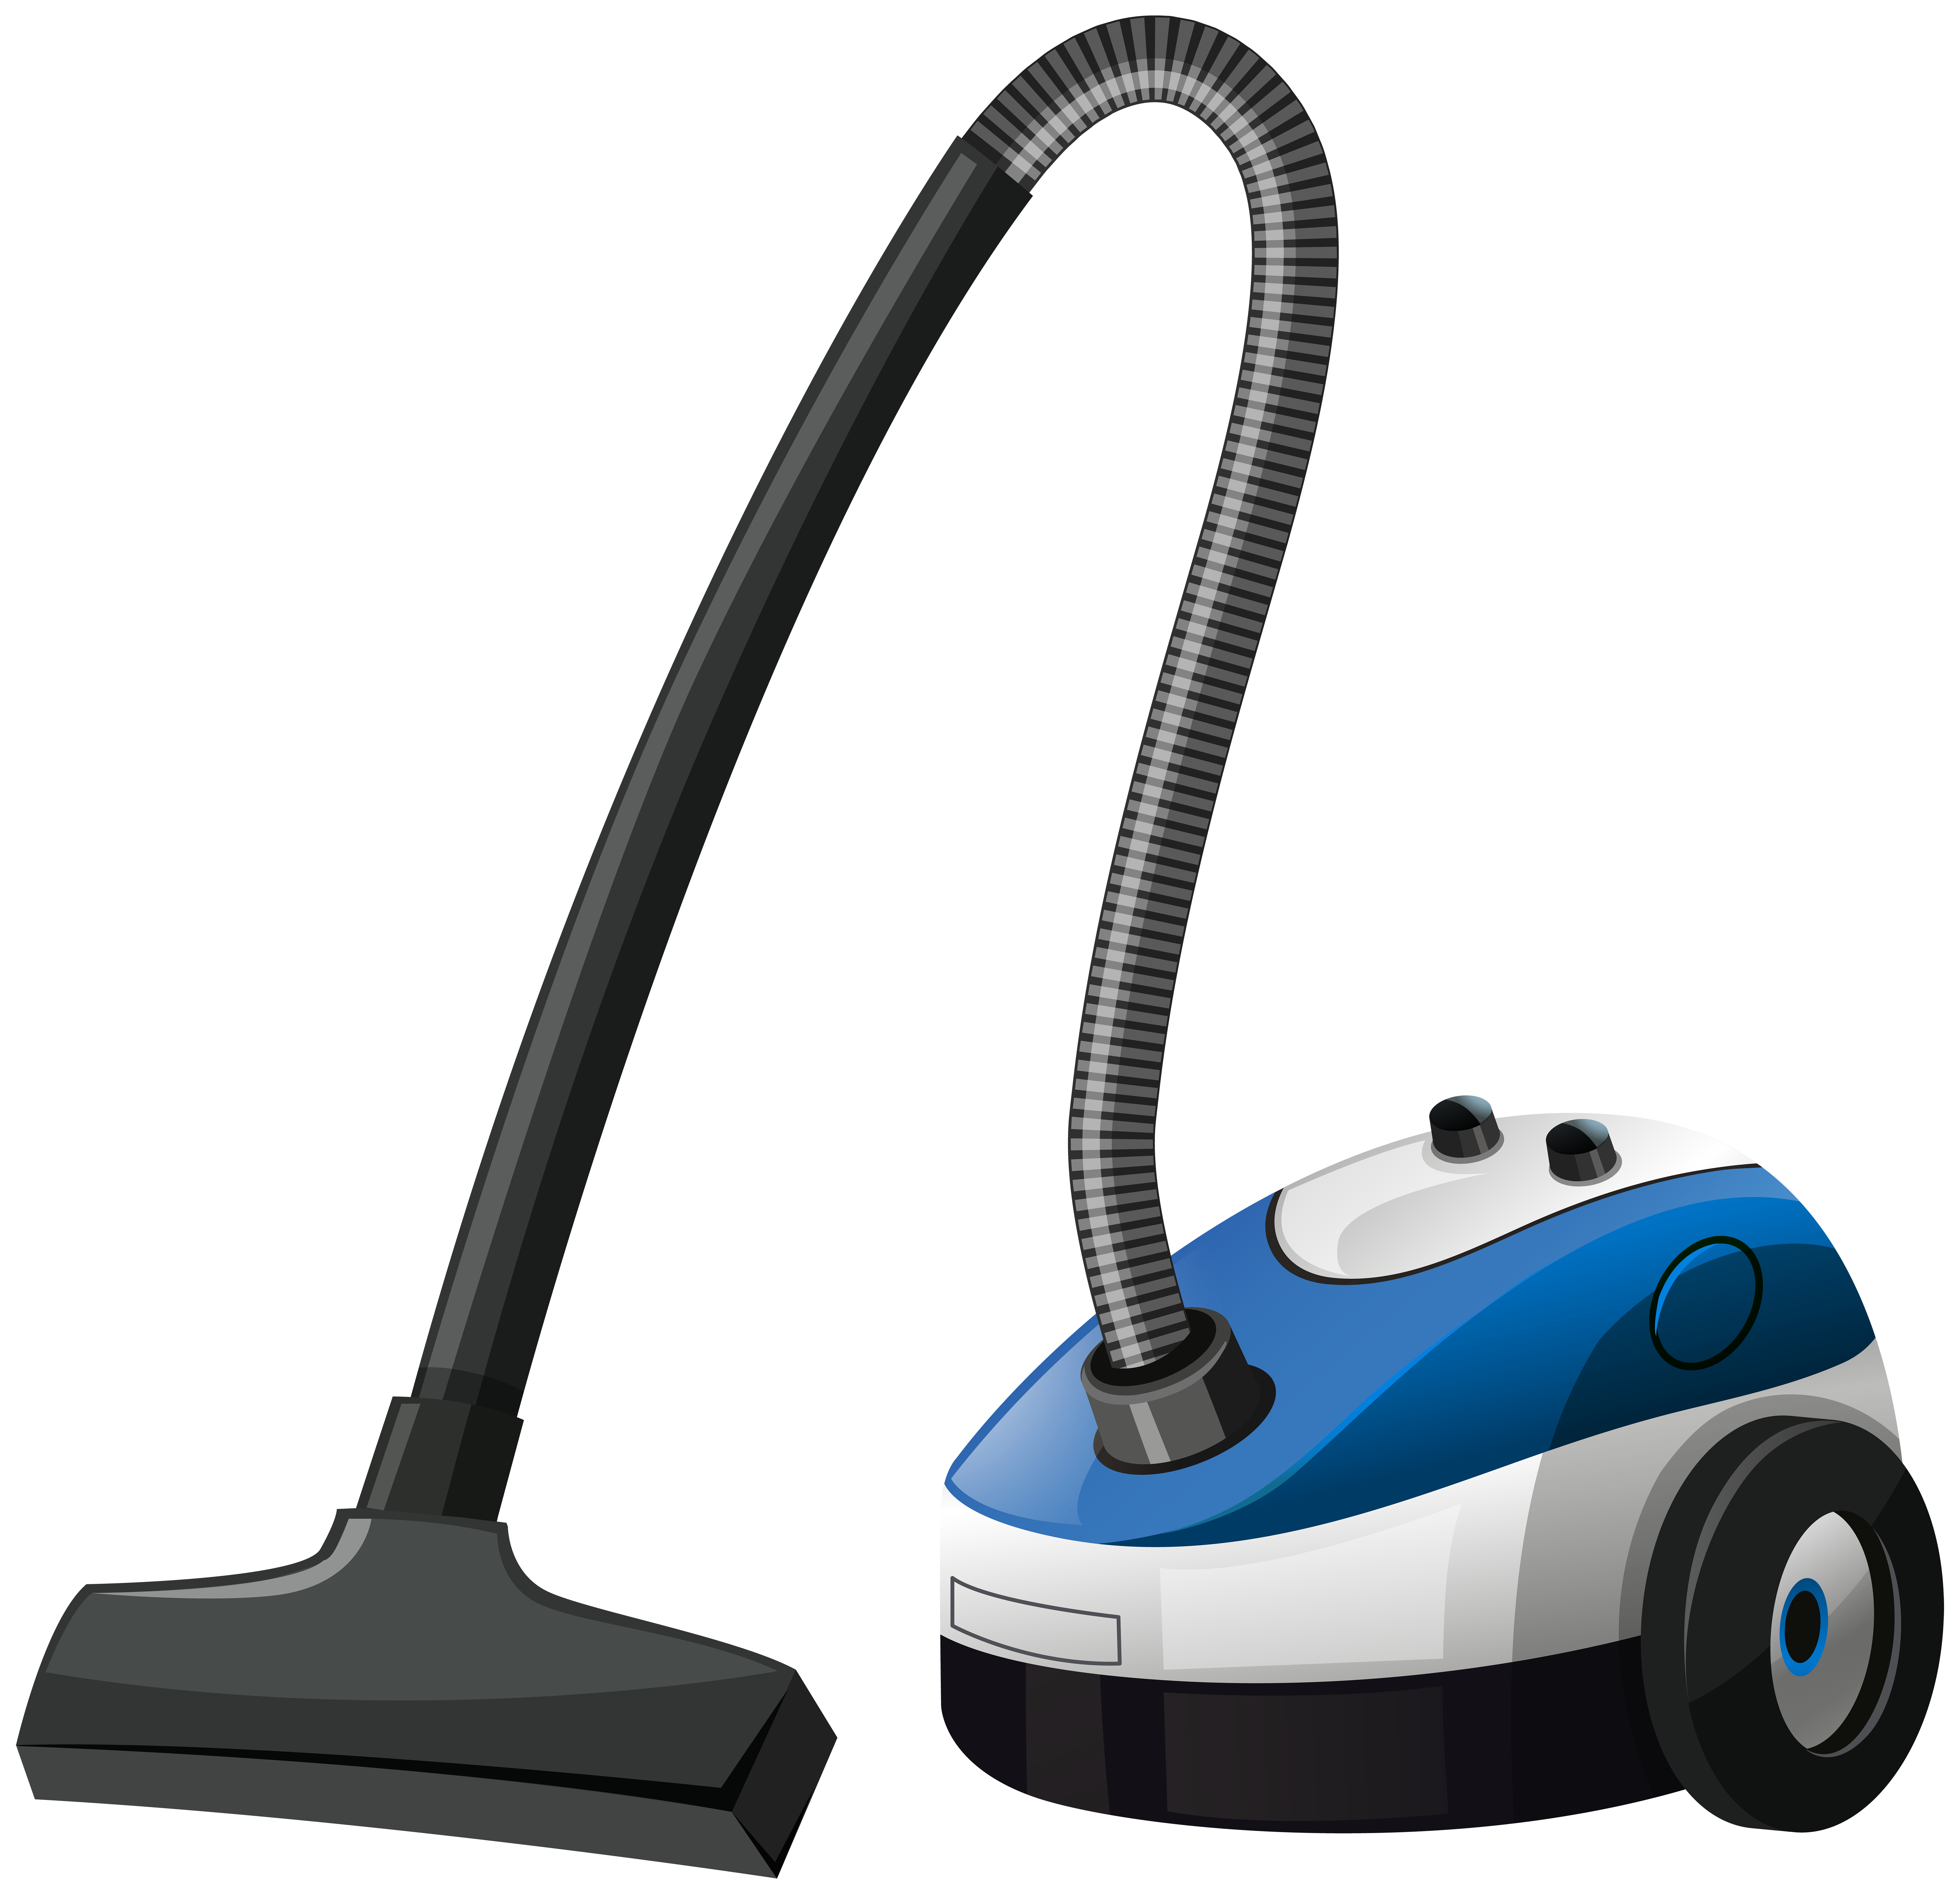 Vacuum cleaner png clip. Clipart tv appliance